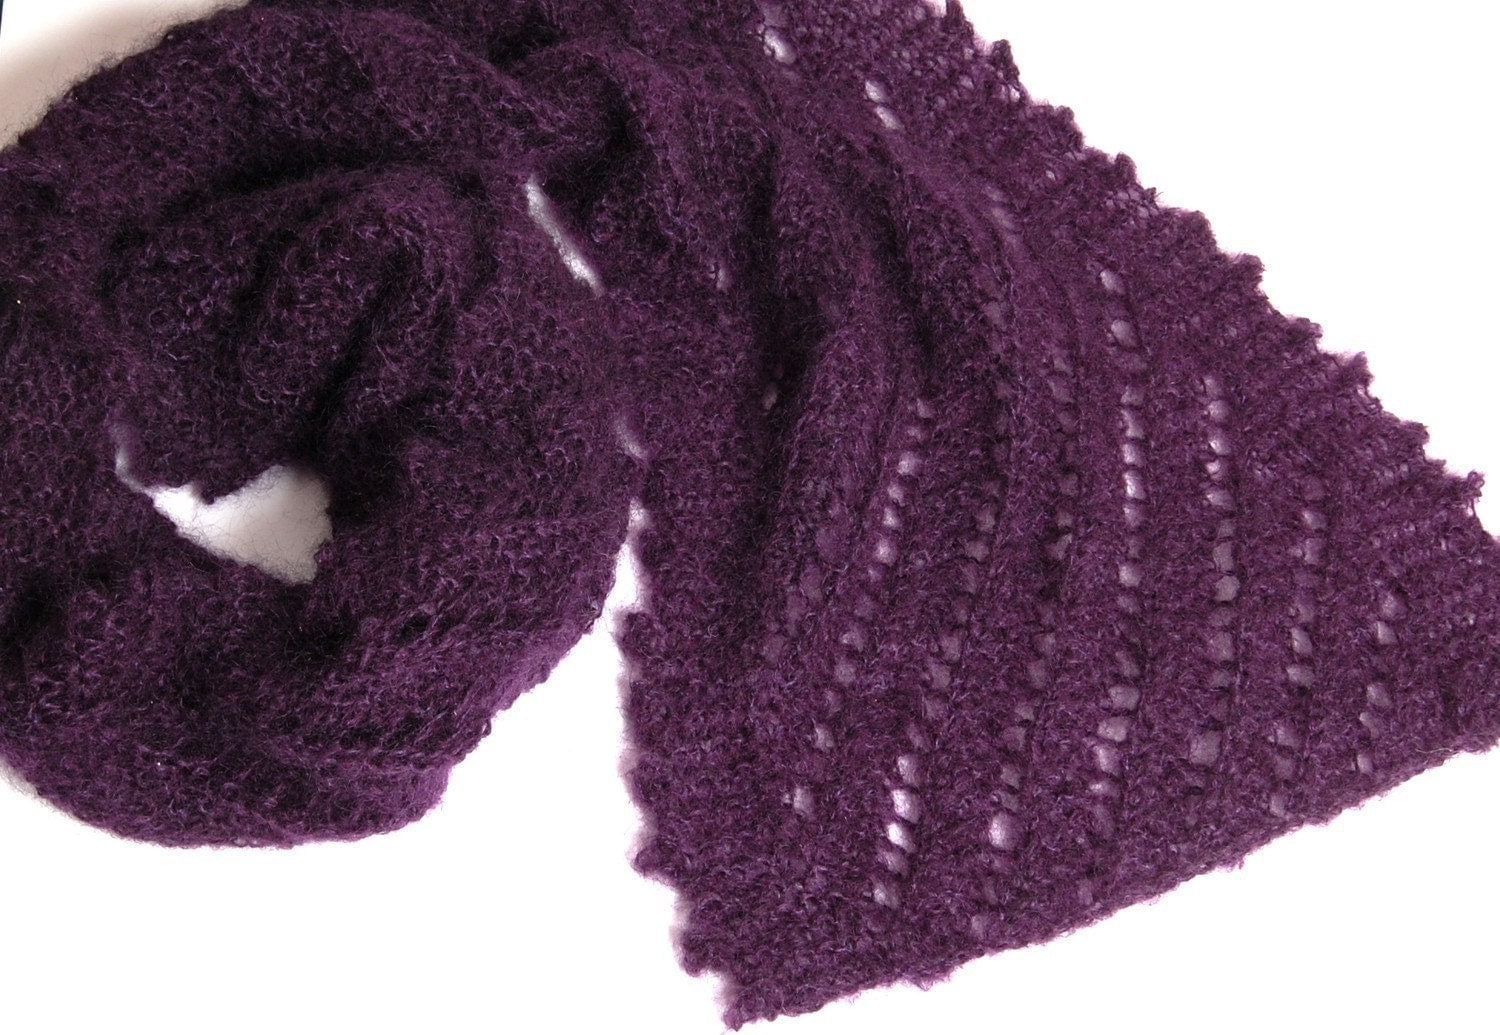 PDF - Knitting Pattern for The Ridges - Scarf (with either Fancy or Simple Edging)